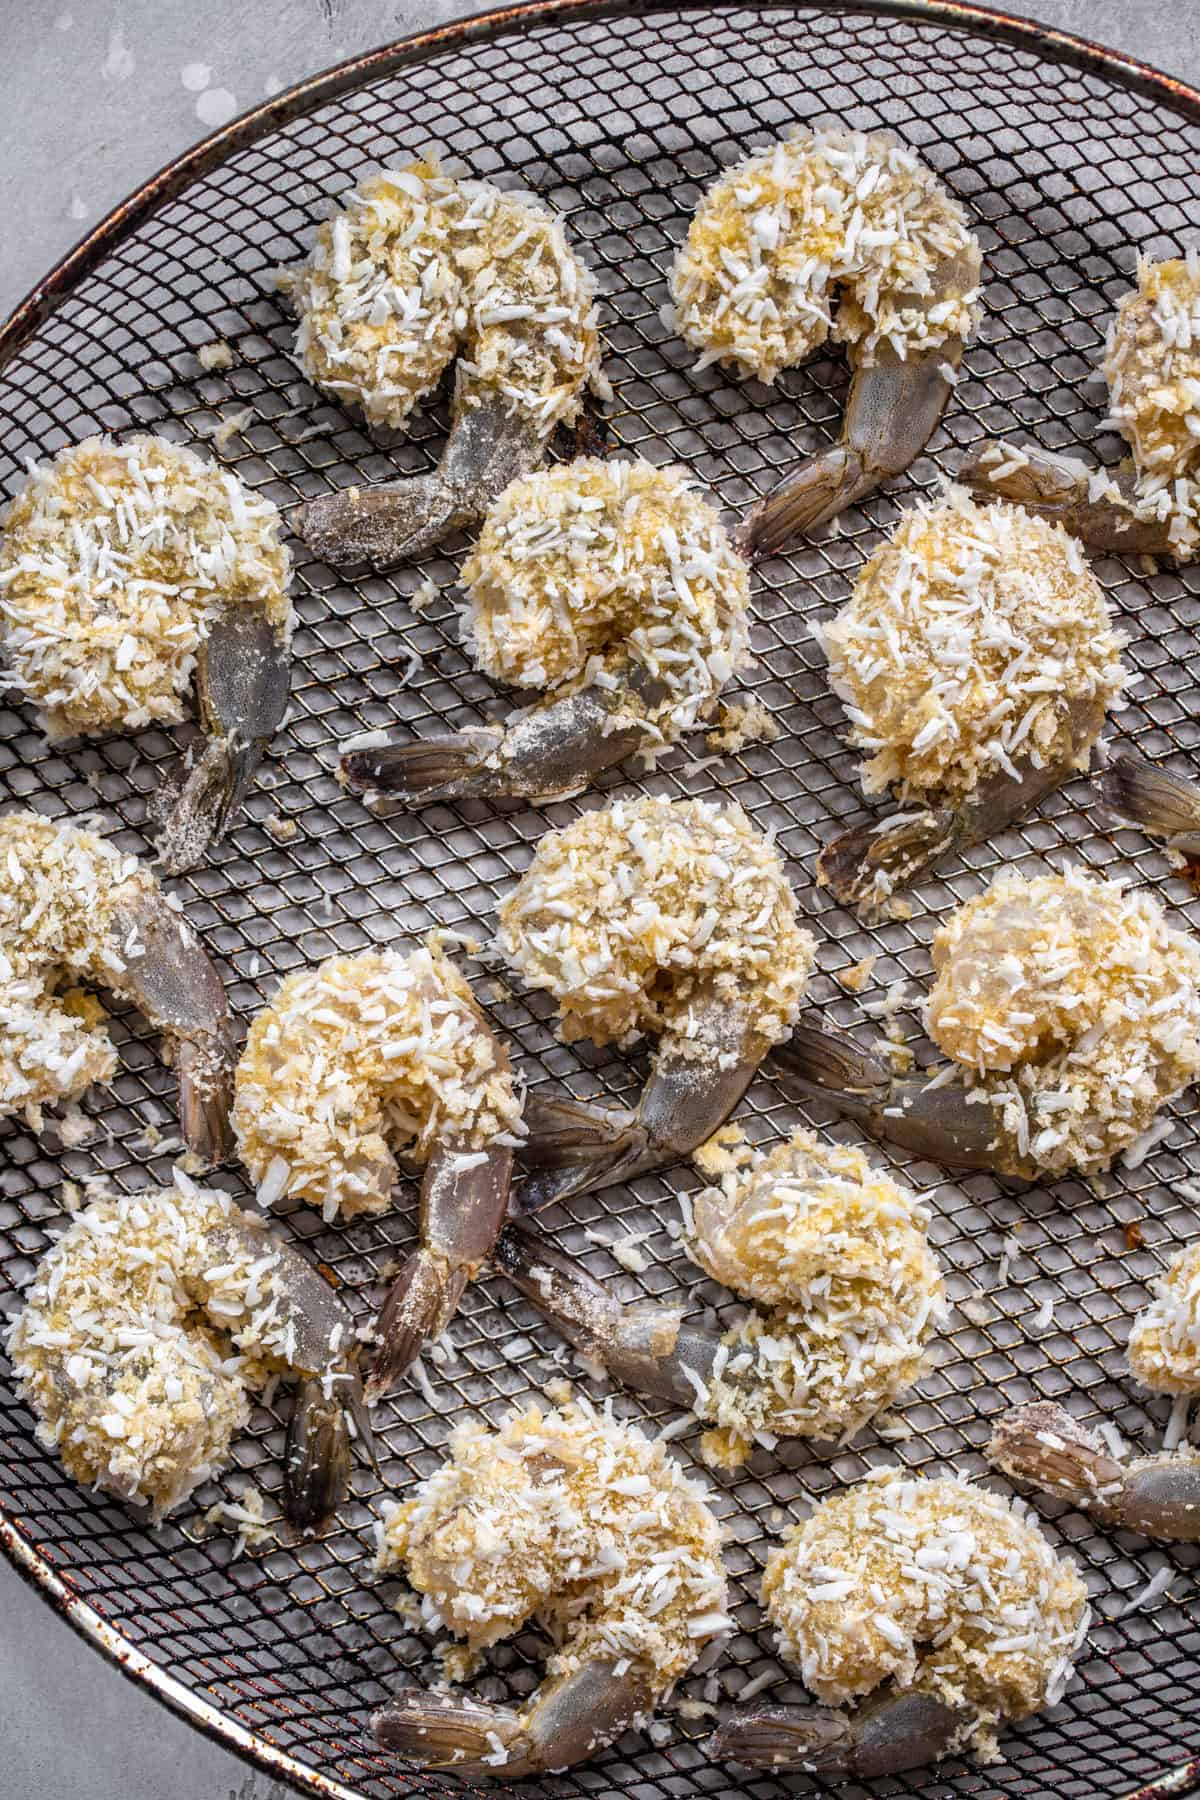 Air fryer panko shrimp before being cooked on a mesh plate